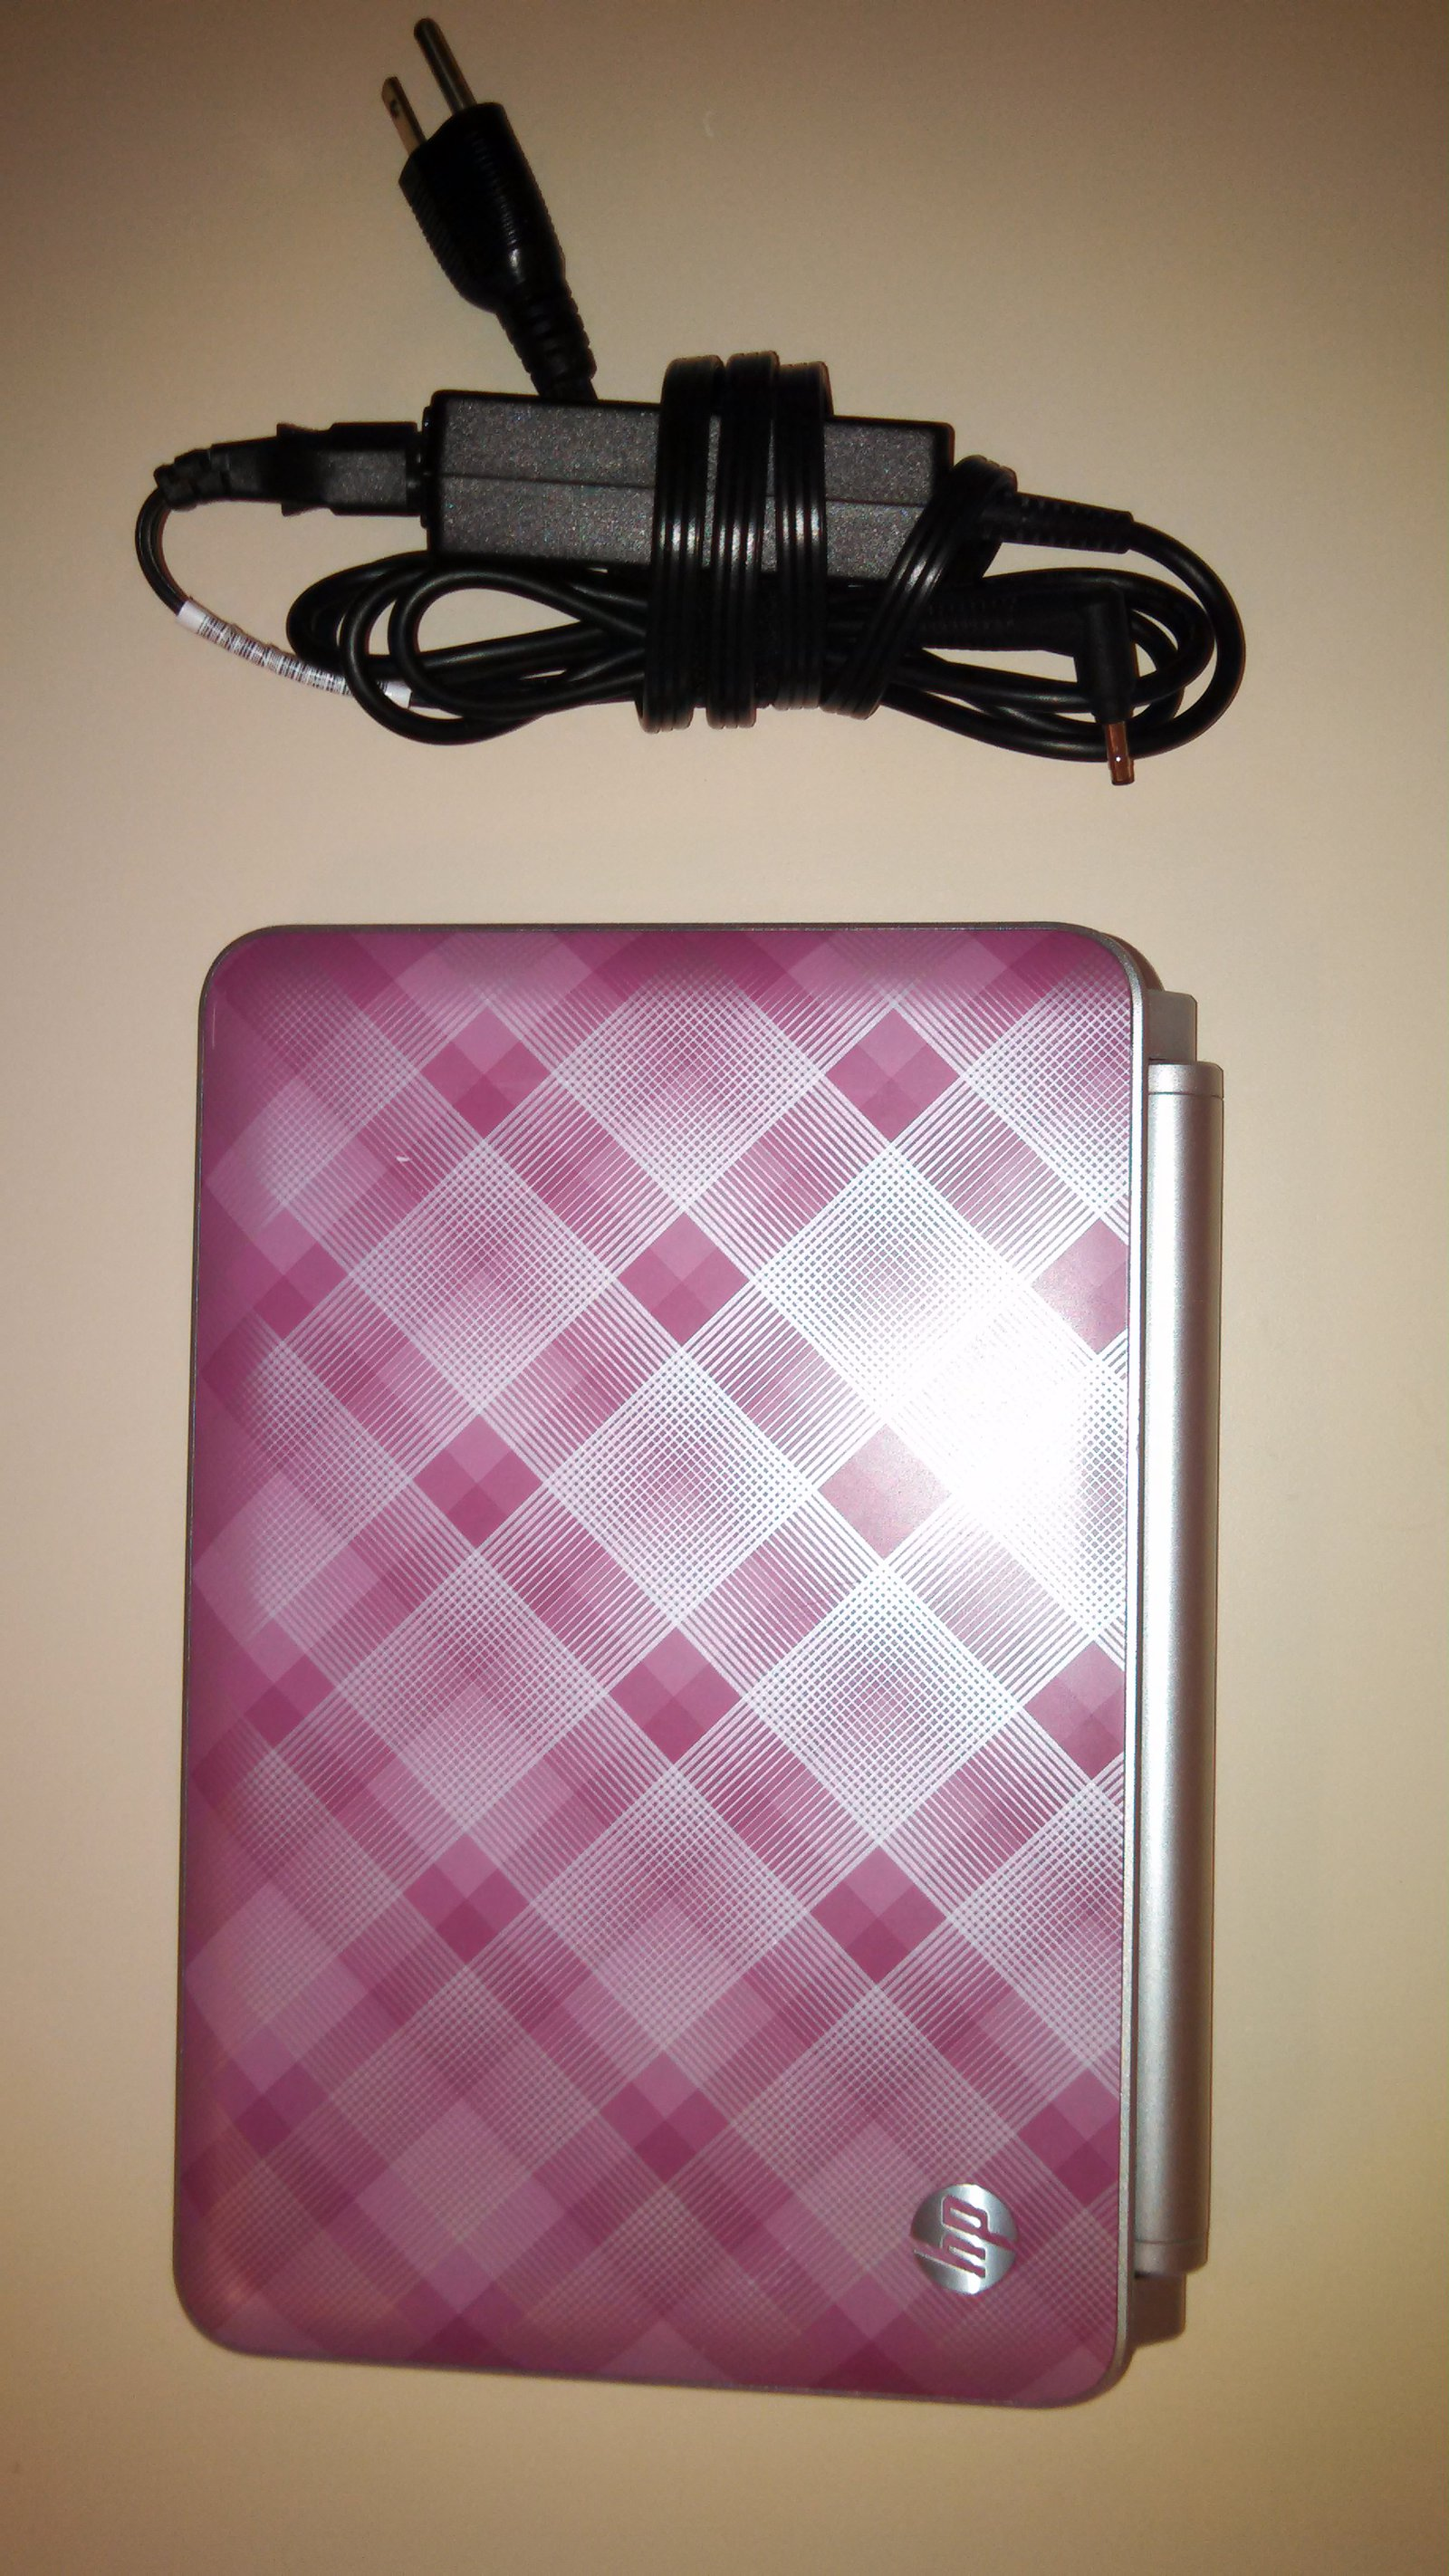 FOR SALE: HP Netbook